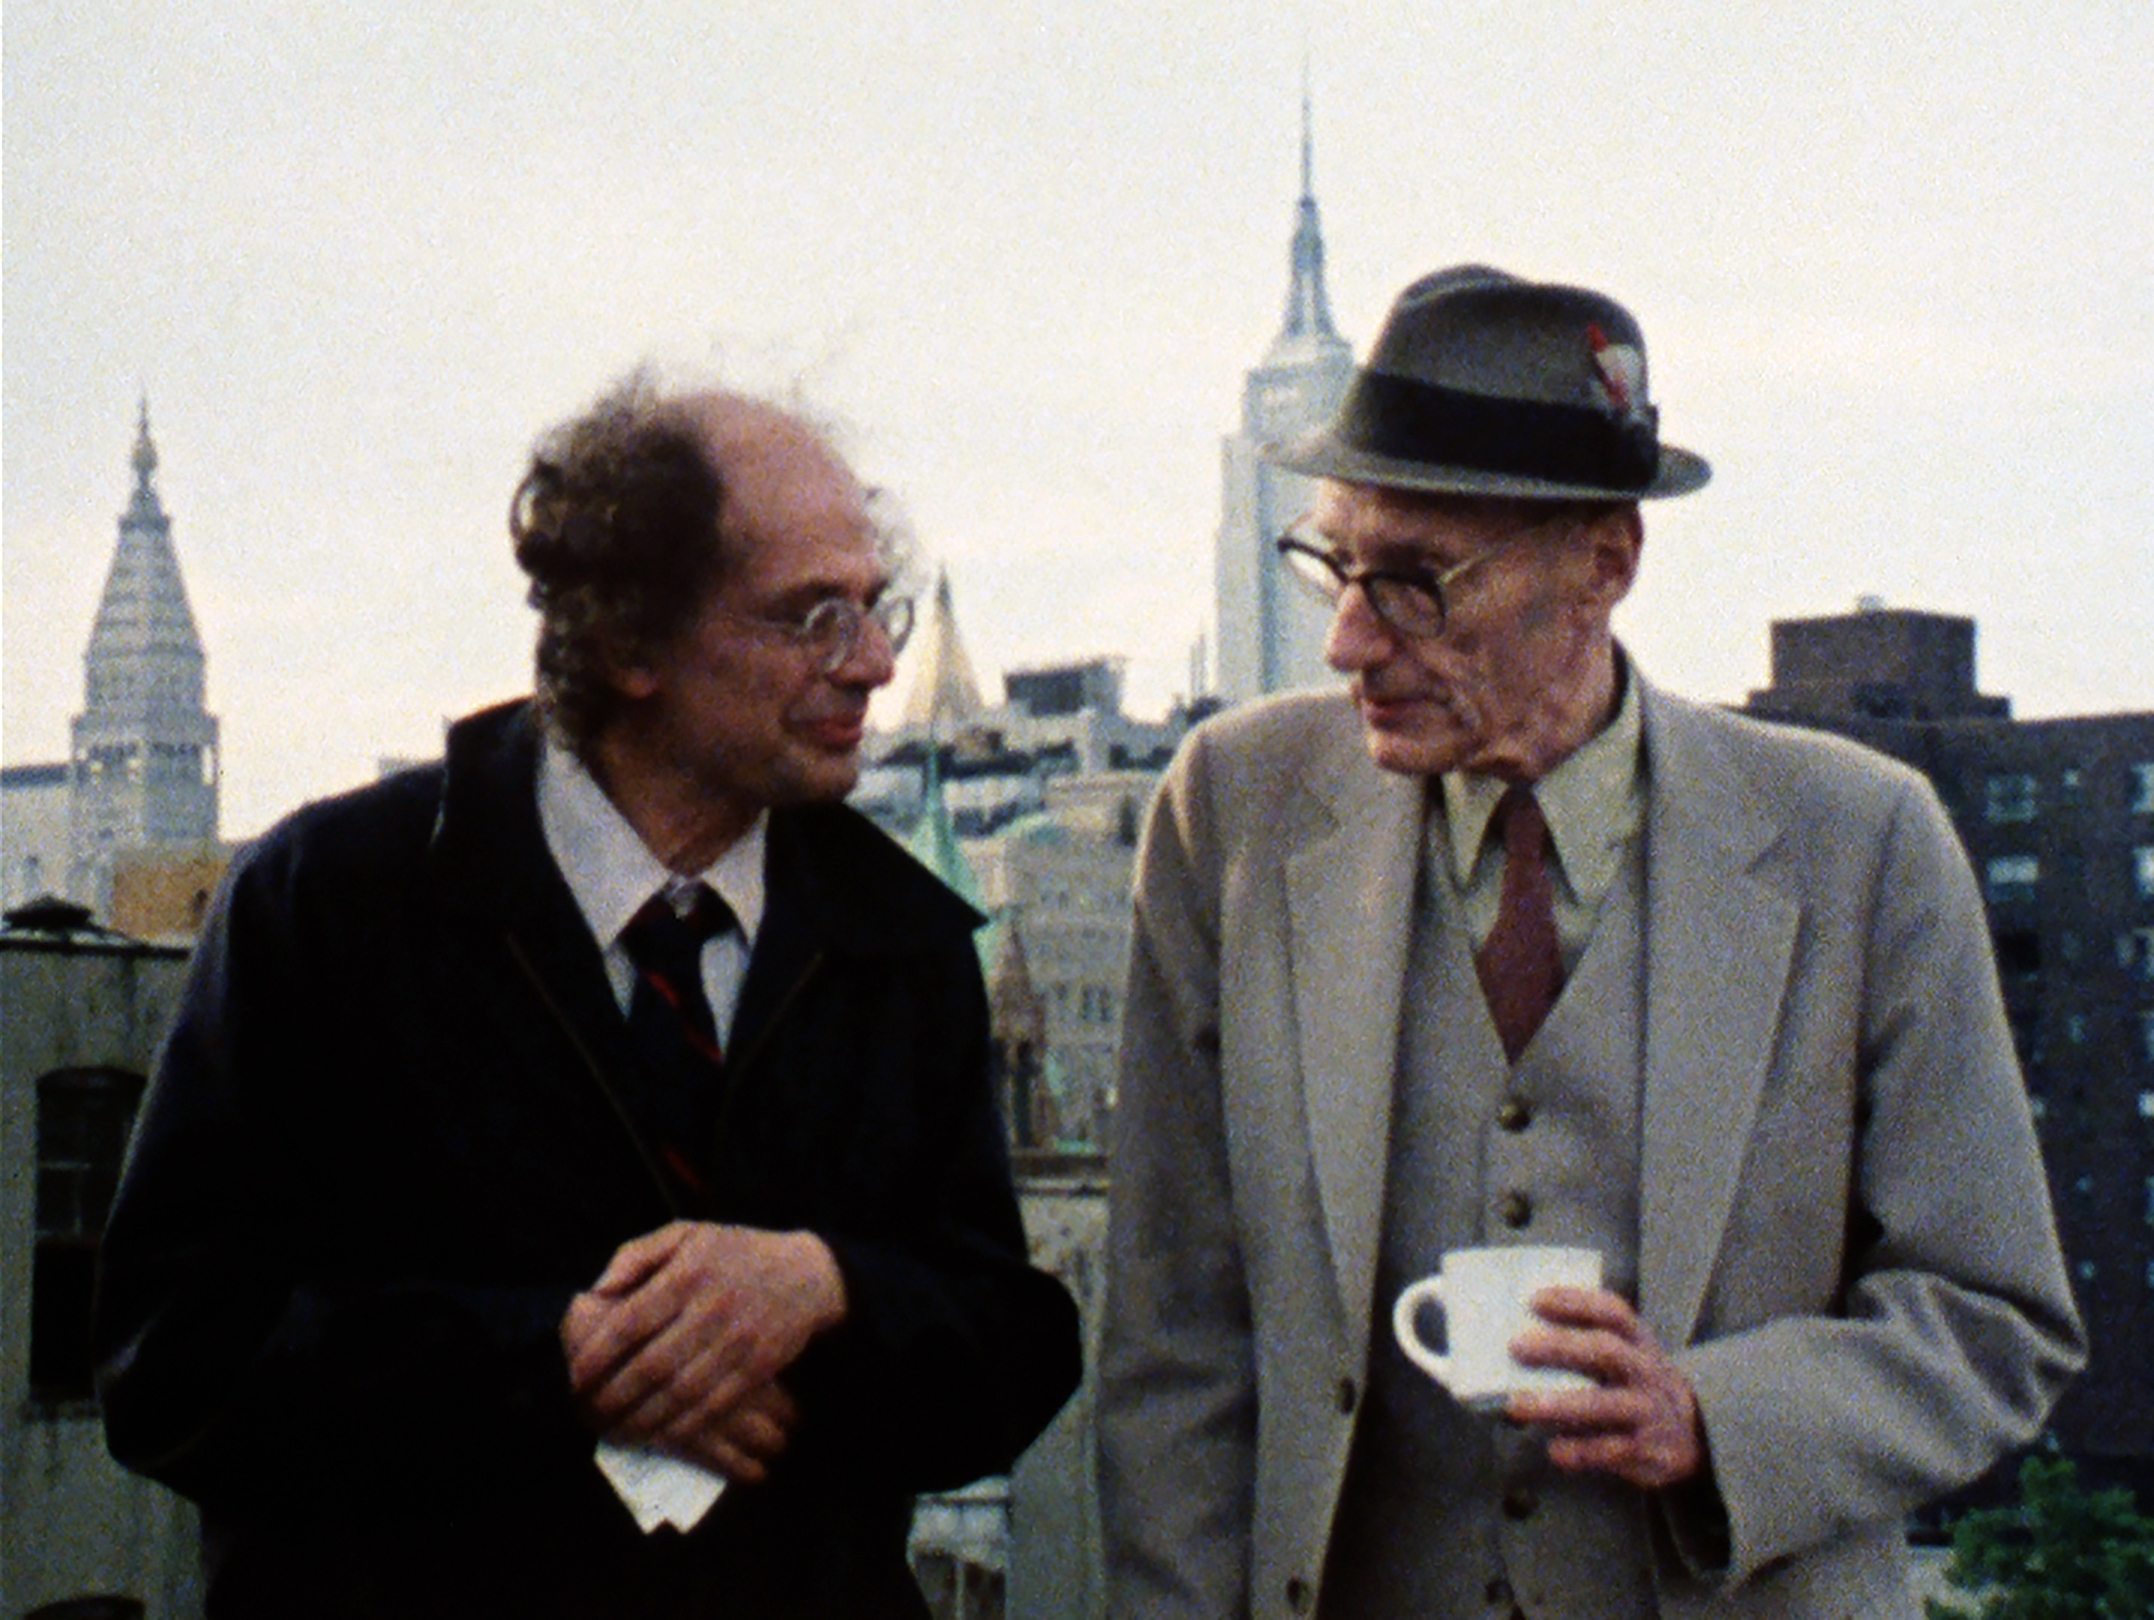 Burroughs: The Movie - Criterion Collection Blu-ray ...